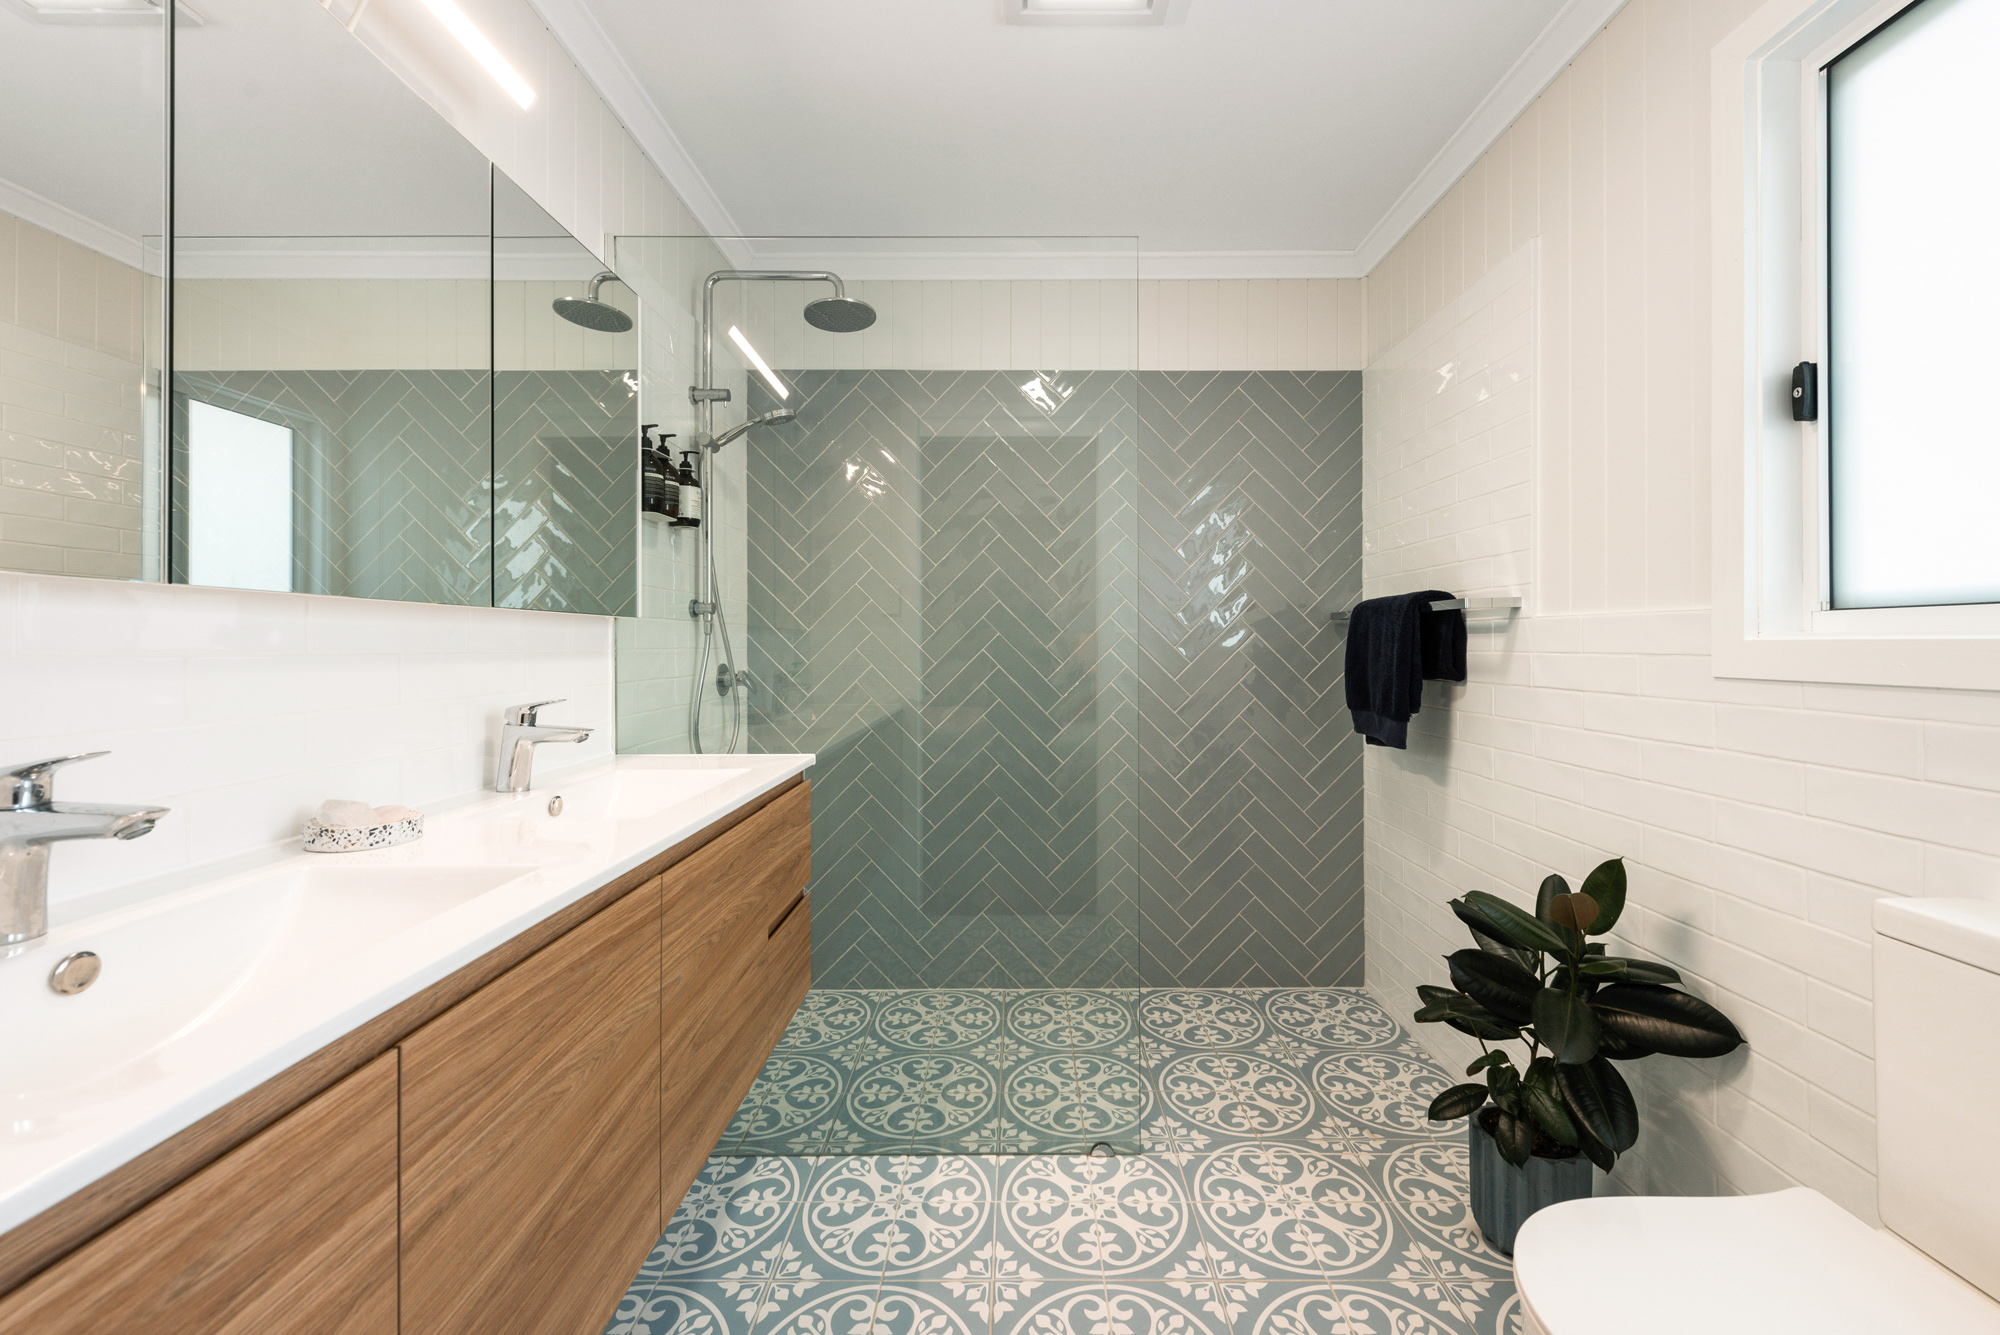 Ensuite for an extension in Oxley Brisbane